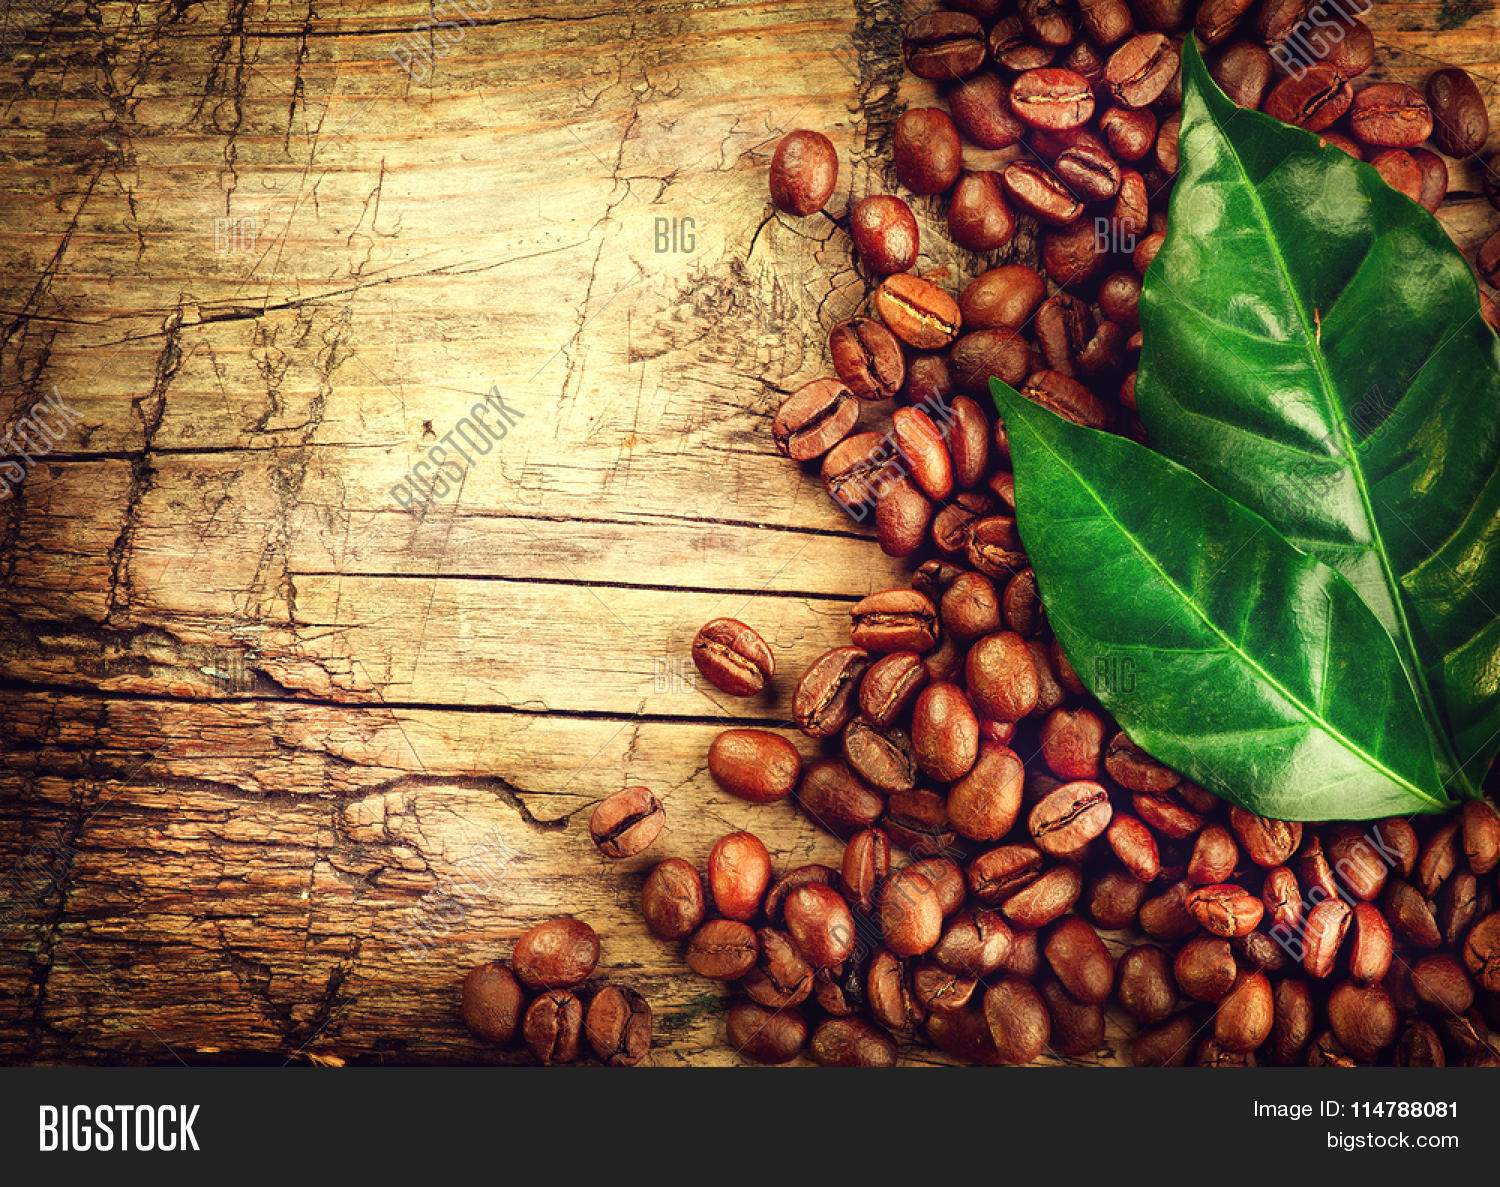 Coffee Beans Over Wood Background Image amp Photo Bigstock